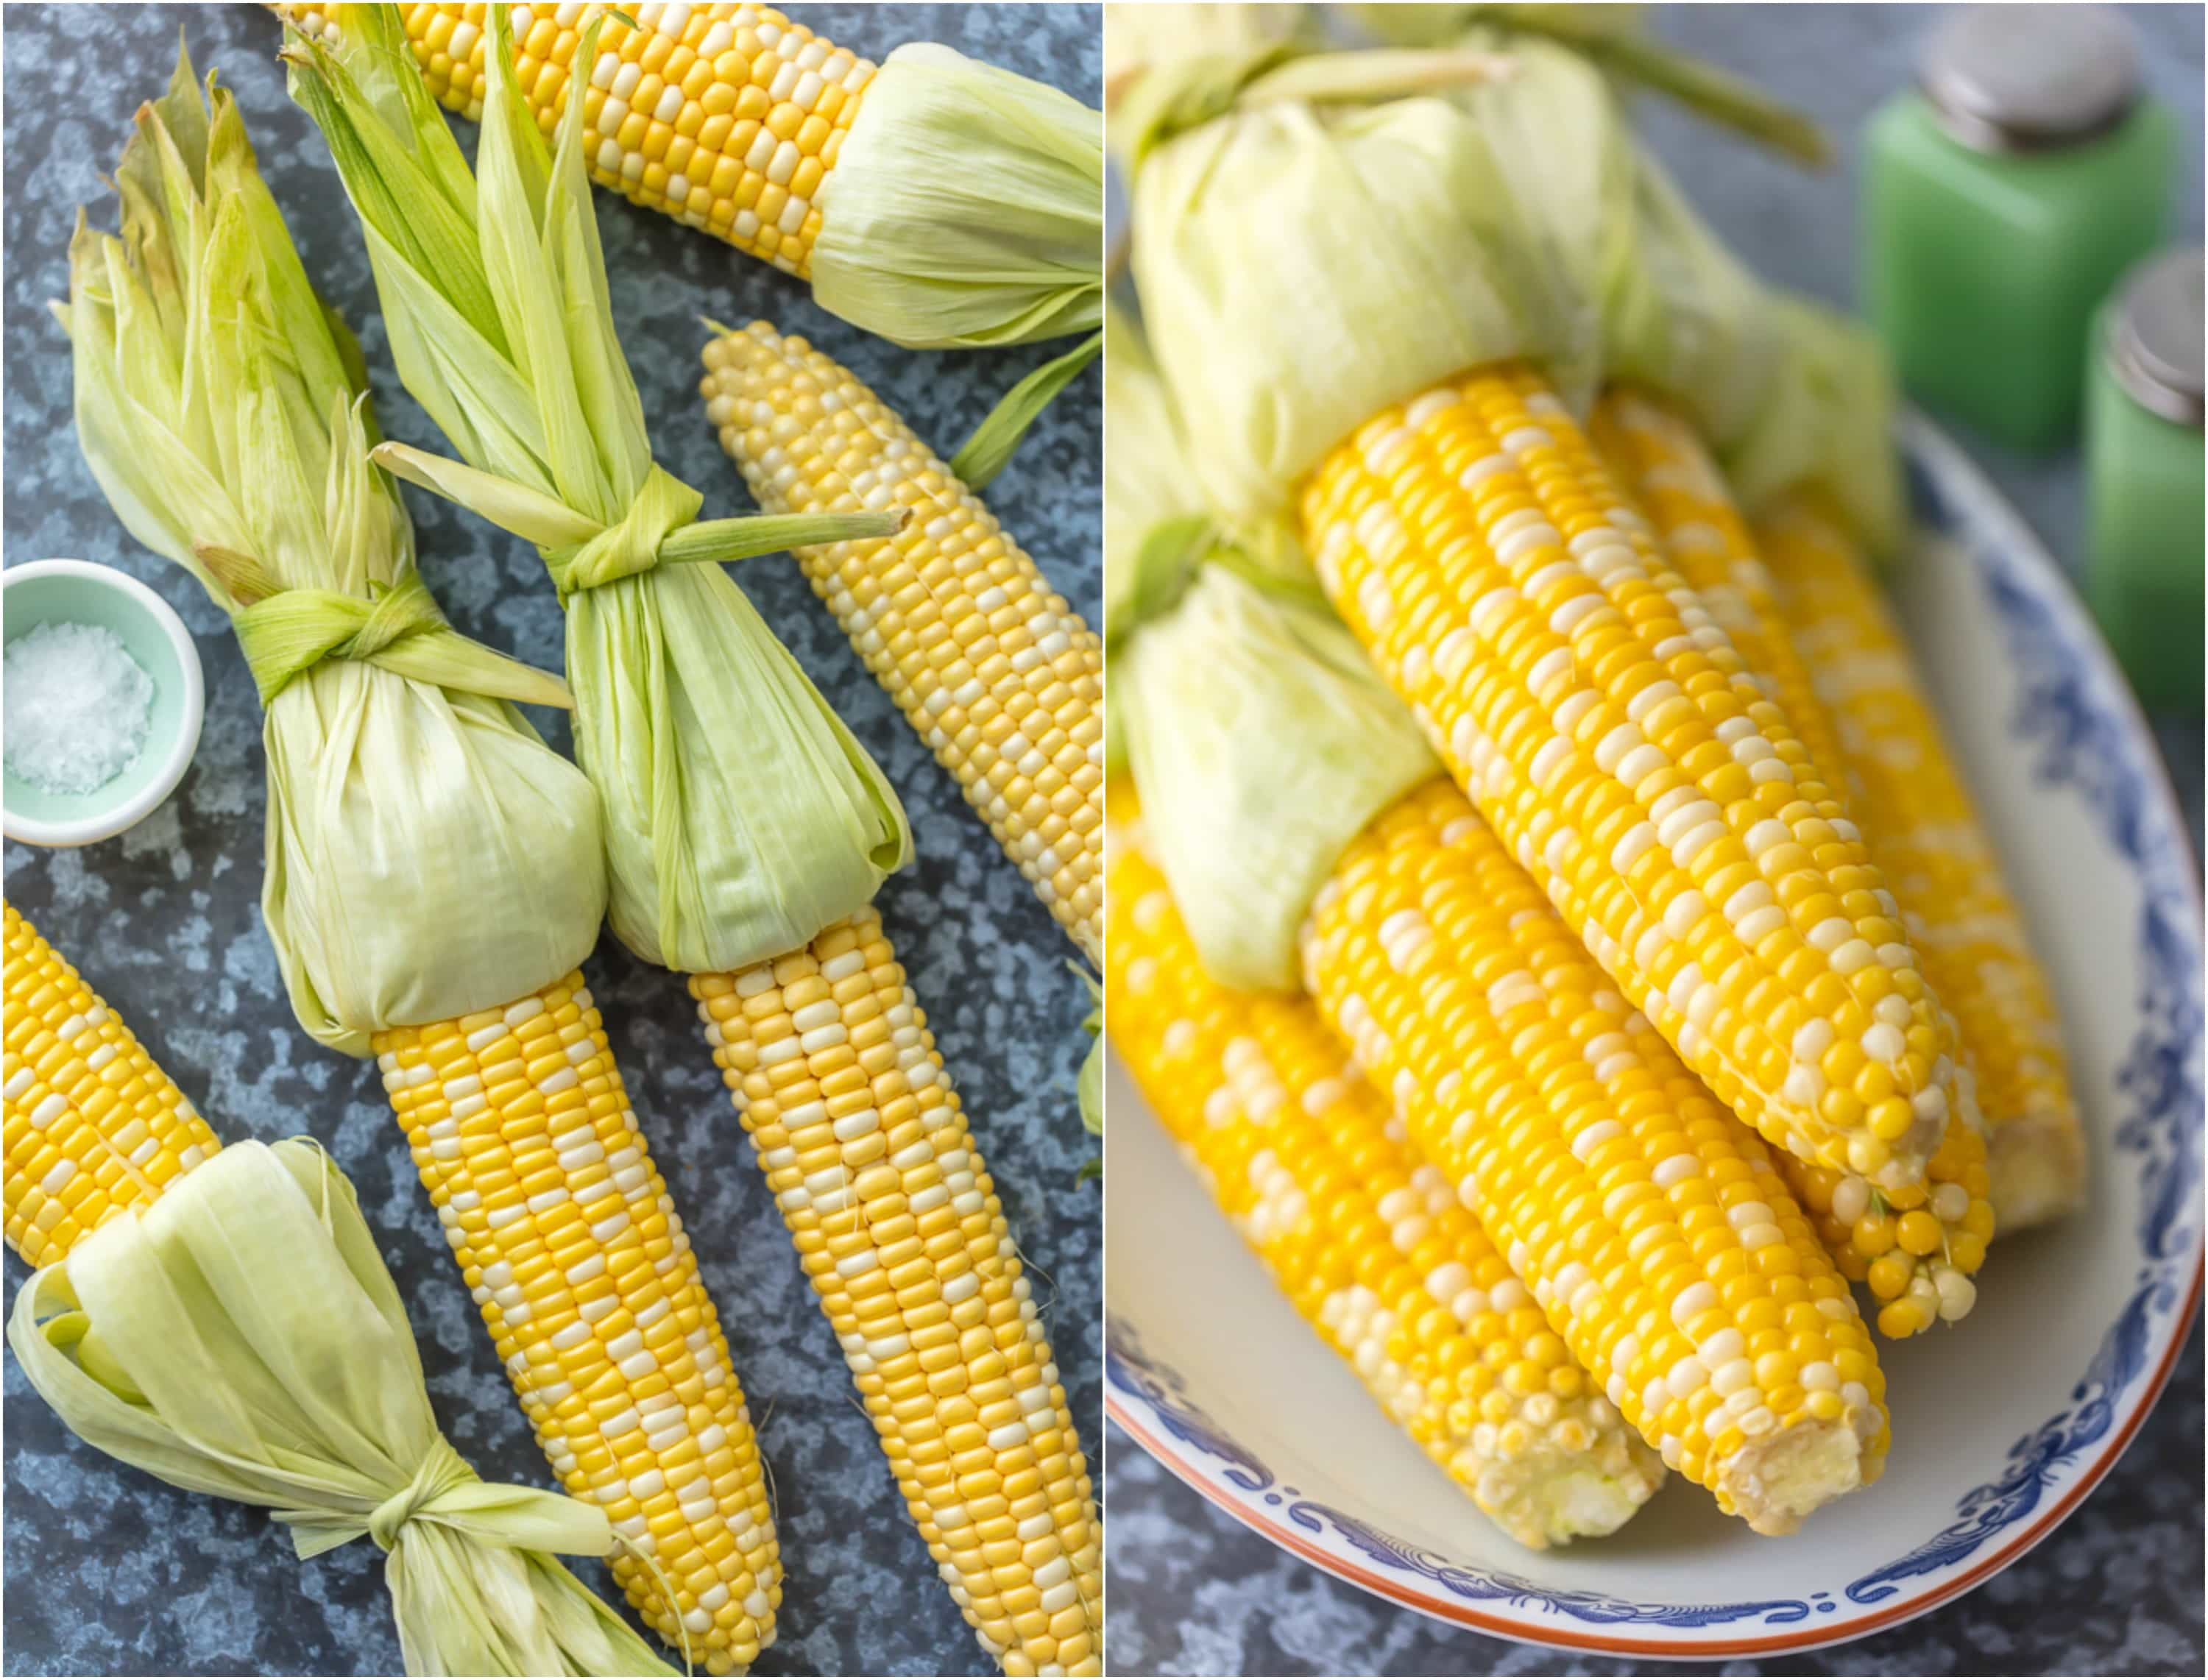 How to Cook Corn on the Cob: We have mastered all the tips and tricks for how long to boil corn on the cob, what to add in to make the corn extra tender and delicious, and fool-proof ways to cook to perfection EVERY time. This Perfect Corn on the Cob is our very favorite Summer Side Dish.